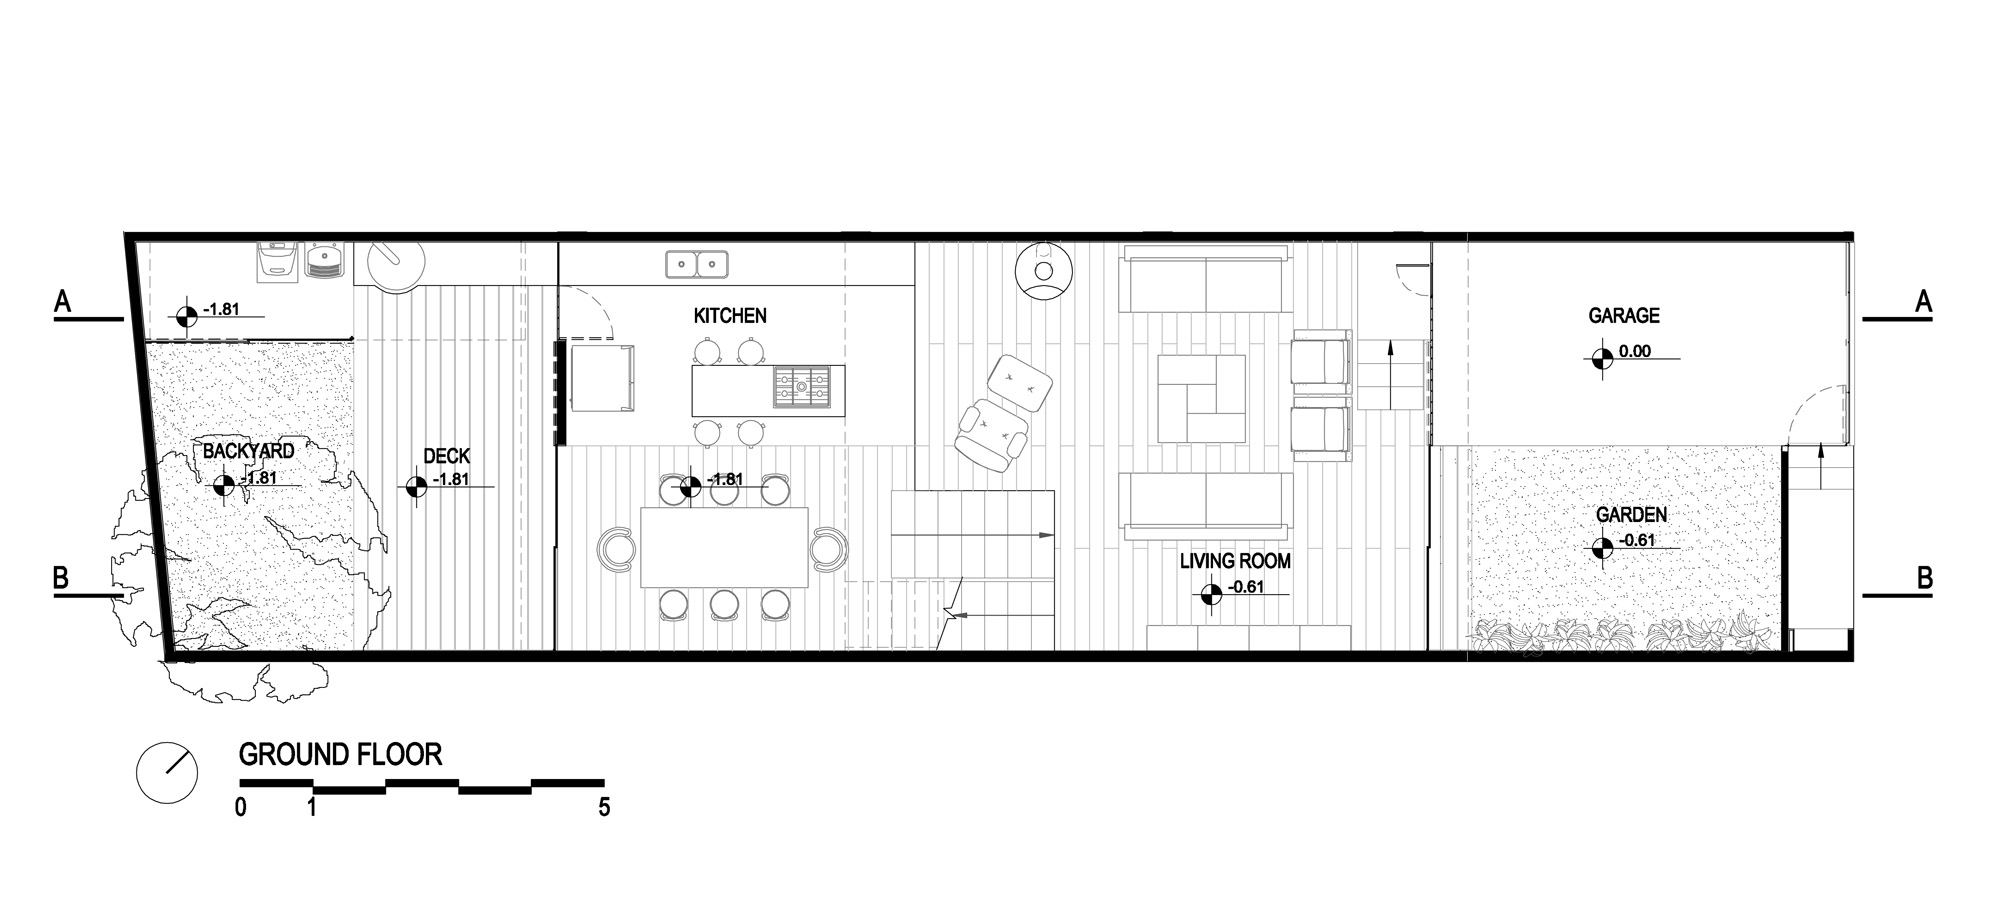 Architecture photography ground floor plan 73204 Ground floor house plan